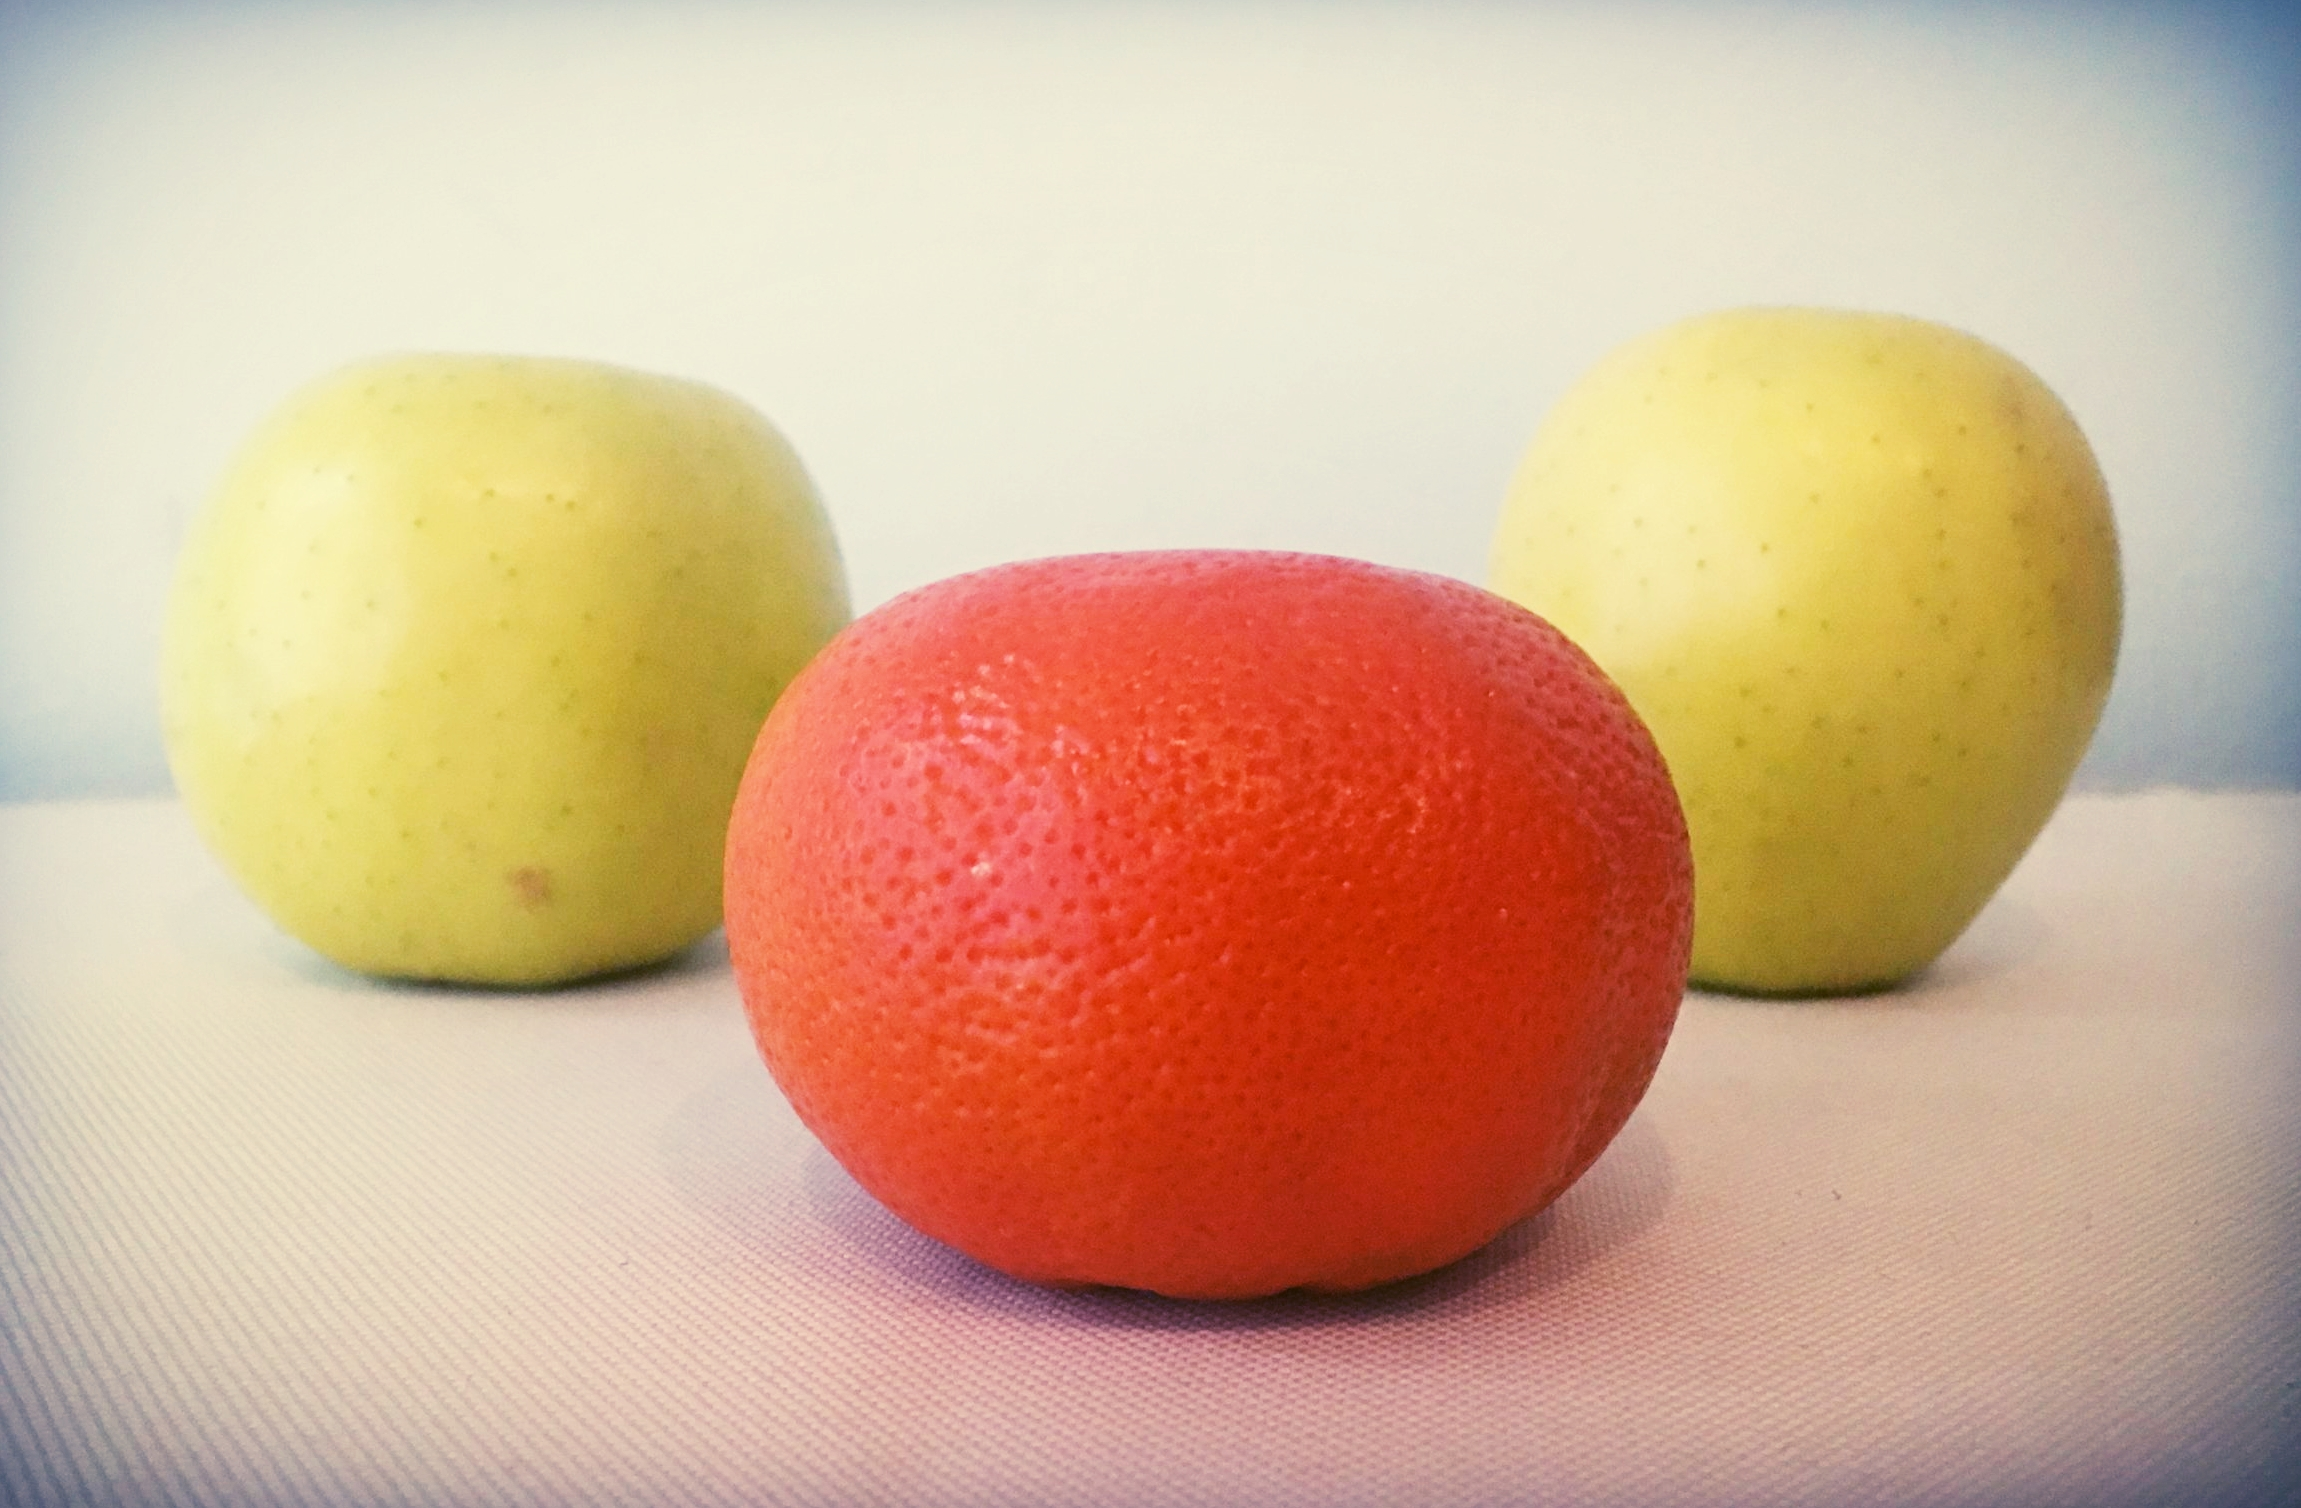 Manage your expectations. If you expect apples to fall from an orange tree, you are going to be disappointed.